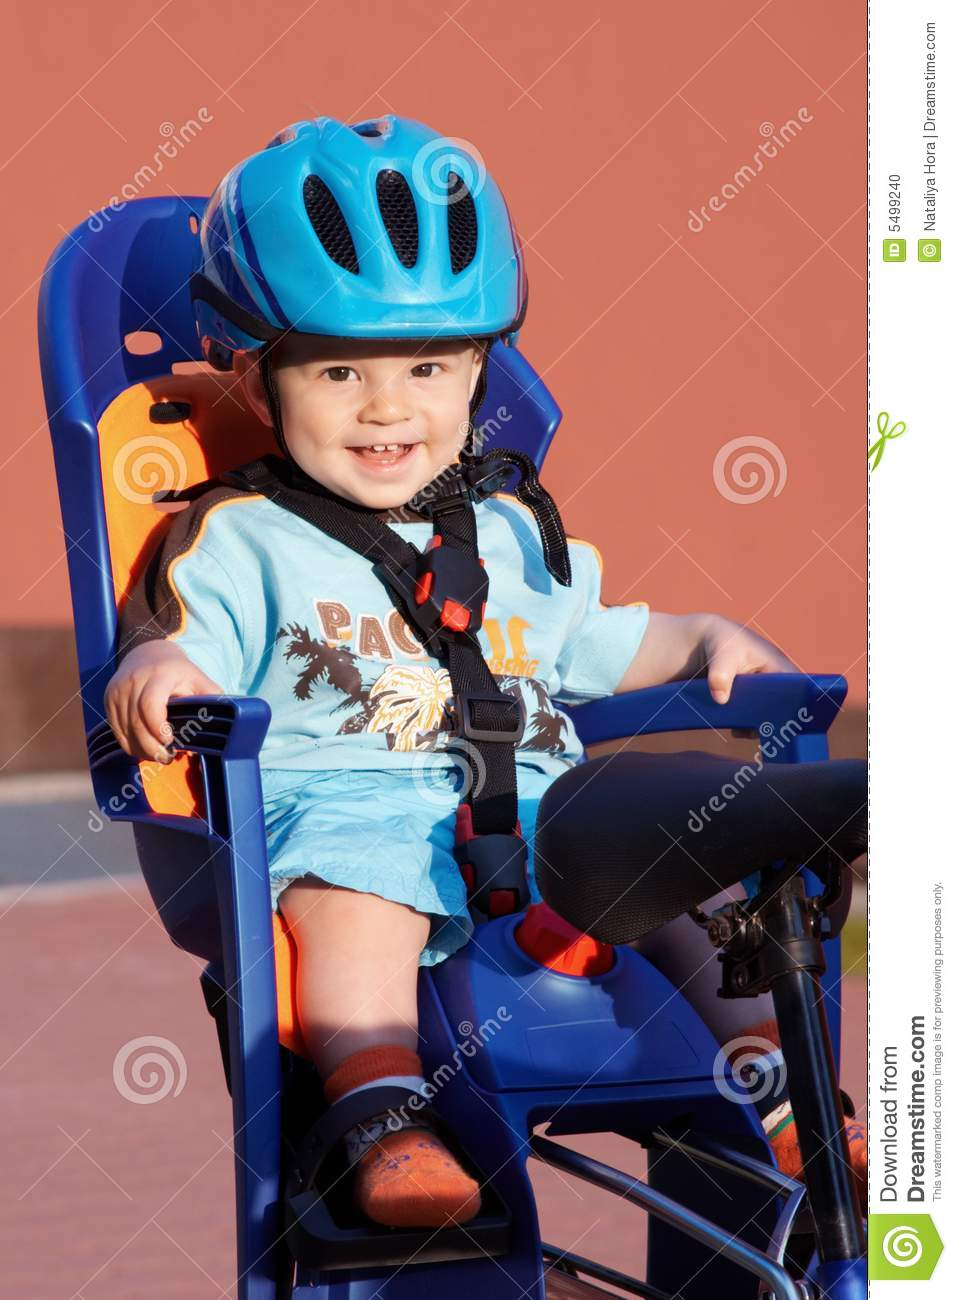 Smiling baby in bicycle seat